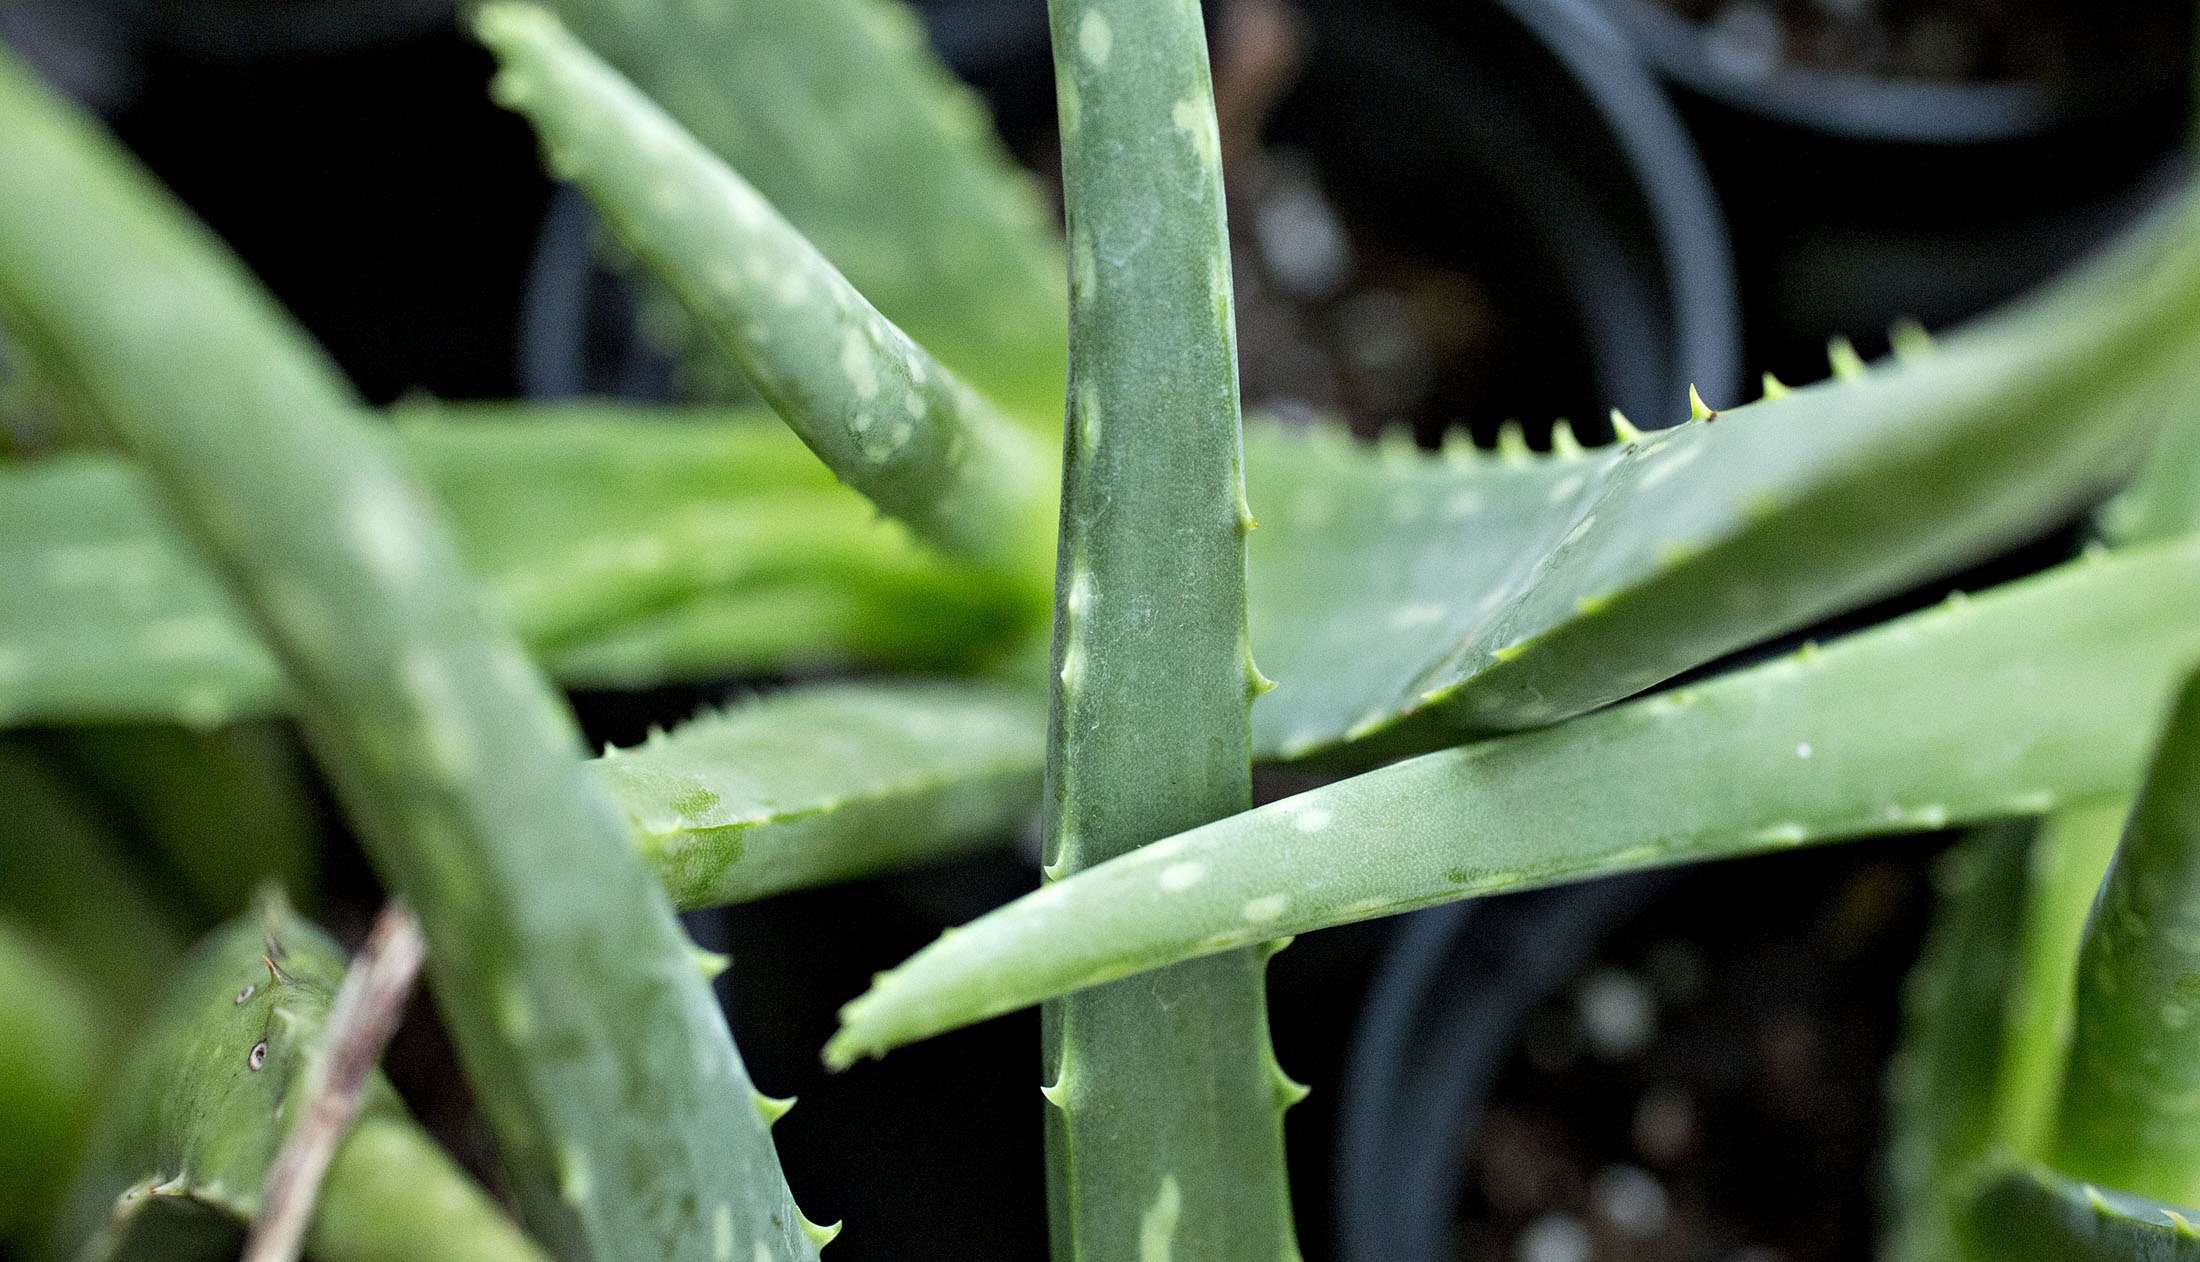 no evidence of aloe vera found in the aloe vera at wal-mart  cvs